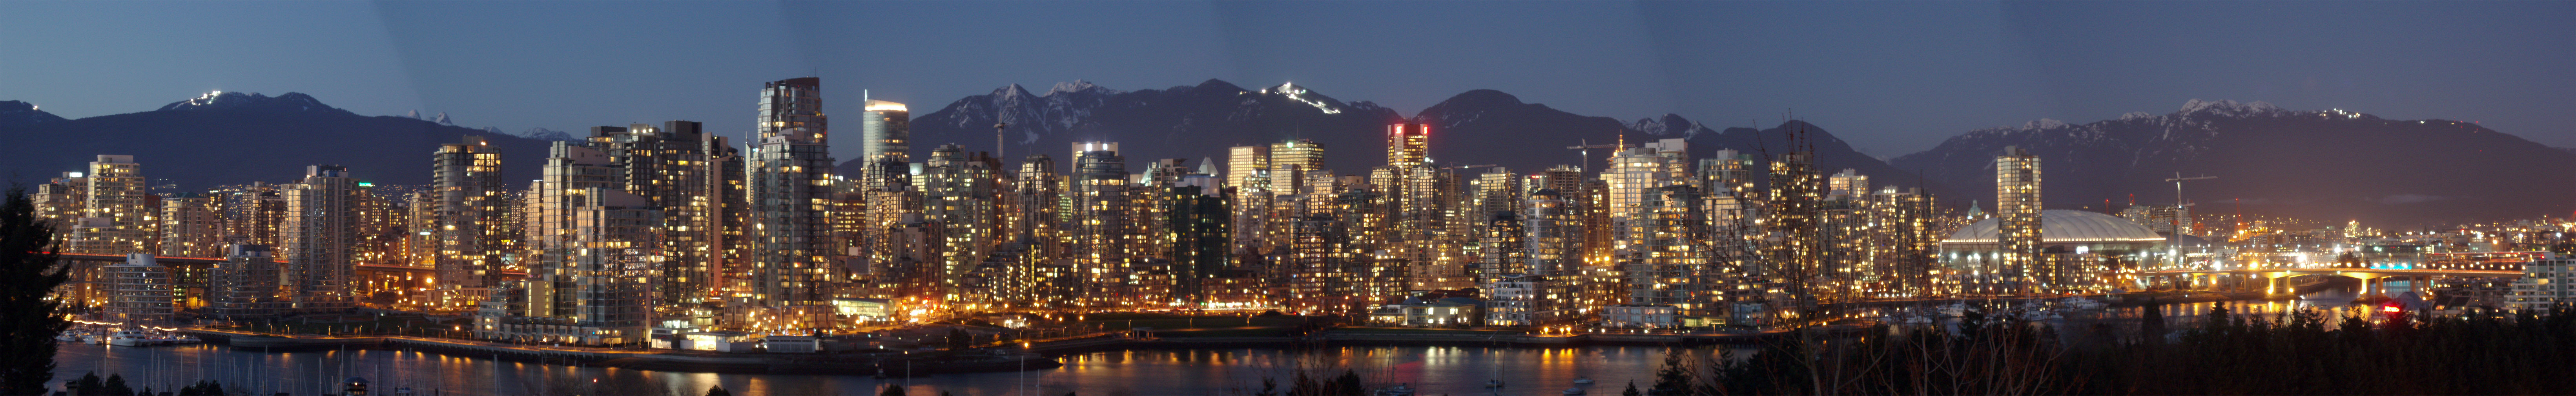 Panorama of Vancouver skyline at night.